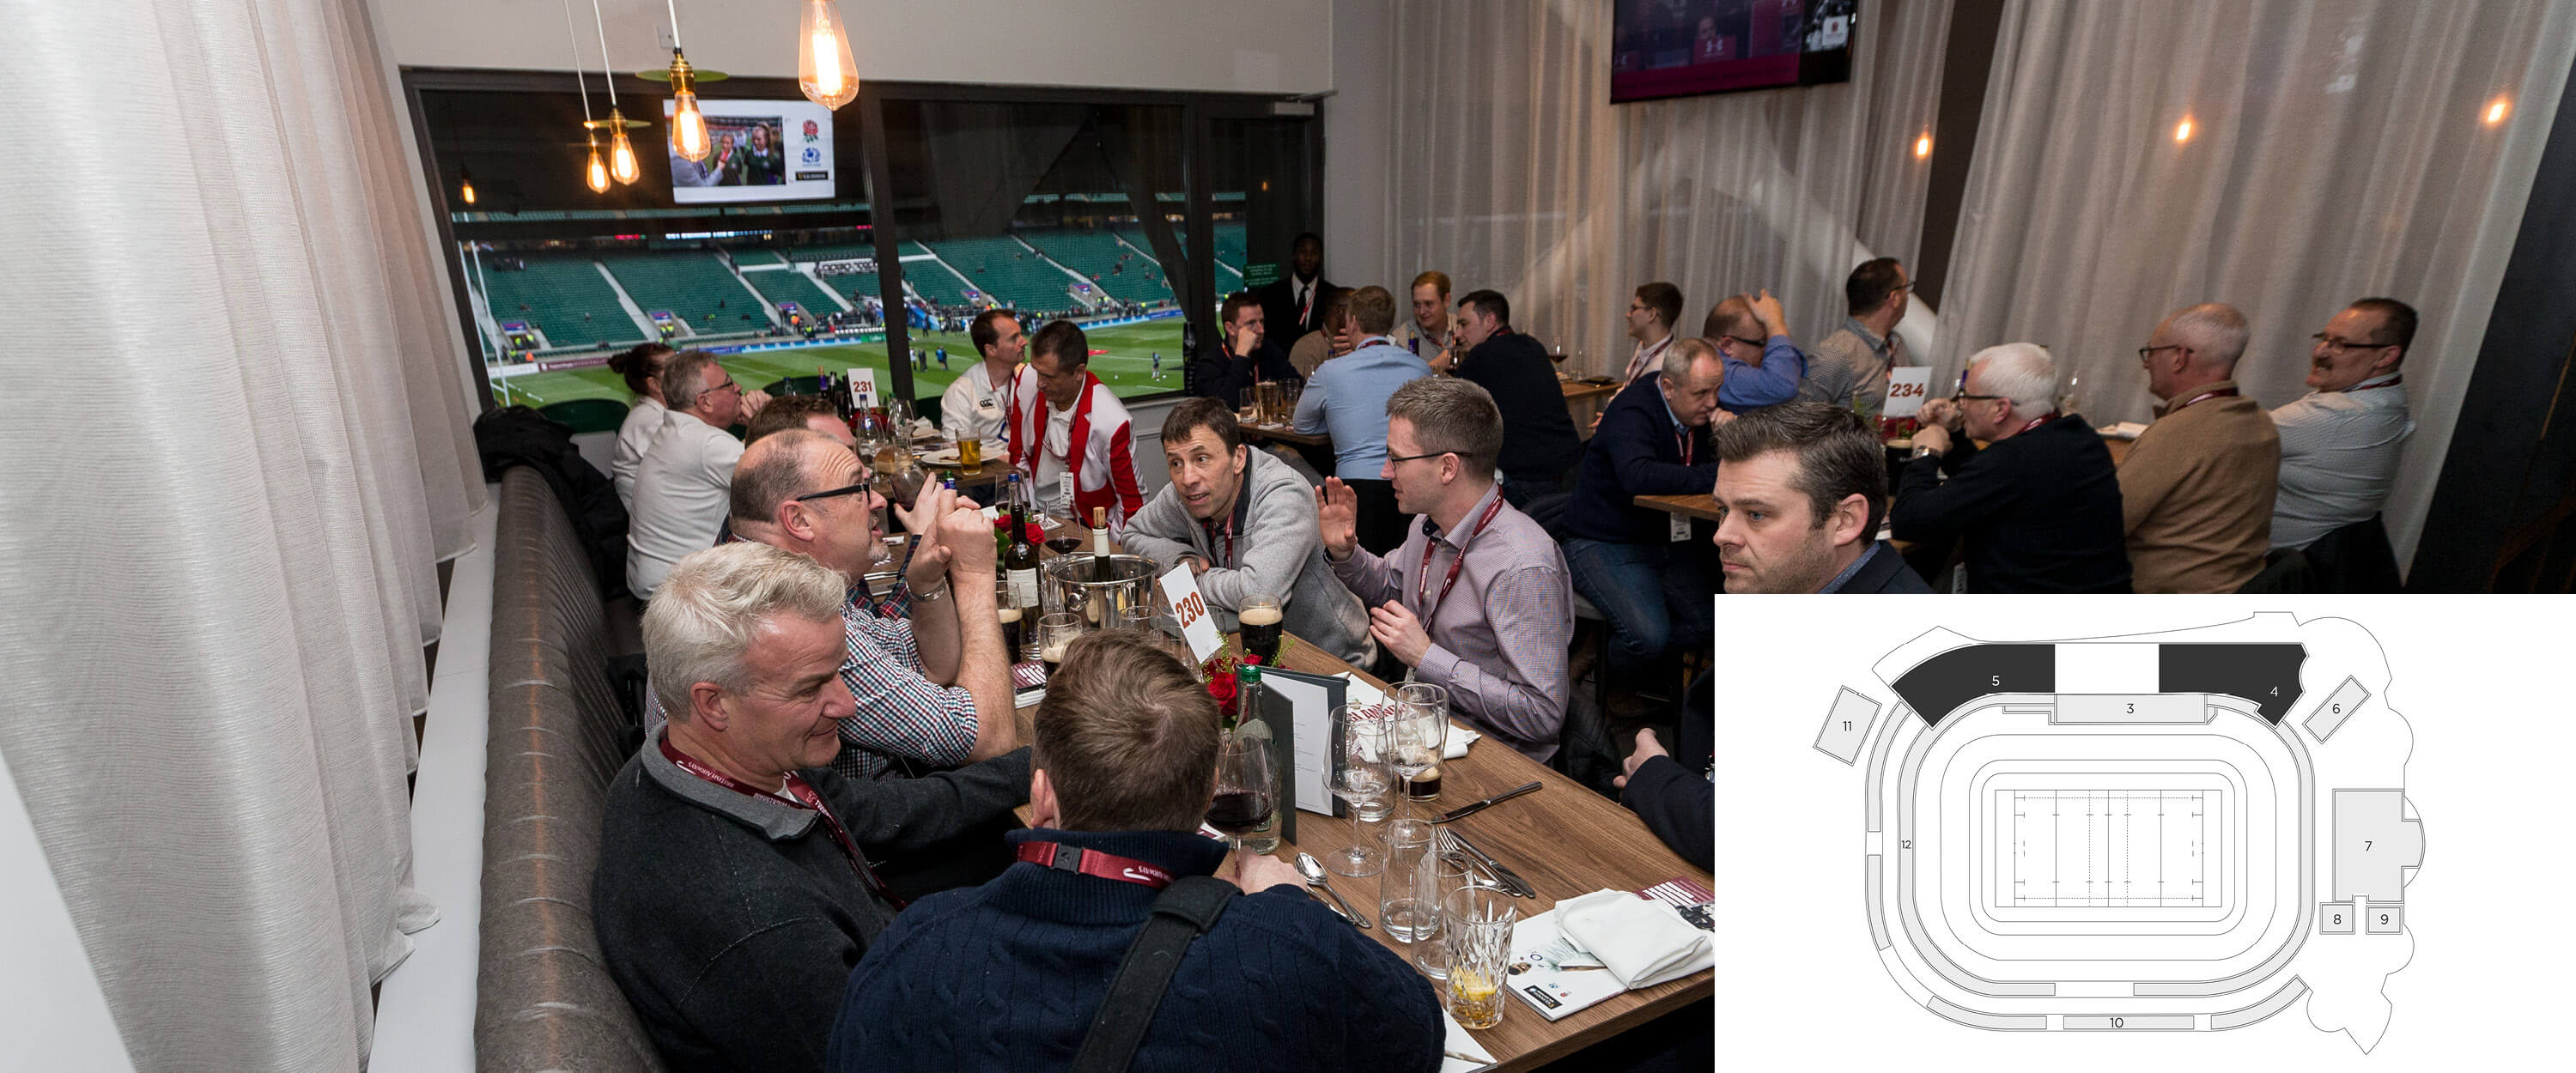 The Lock Pitch View guests enjoying fine dining and complementary bar, with views of the Twickenham pitch.